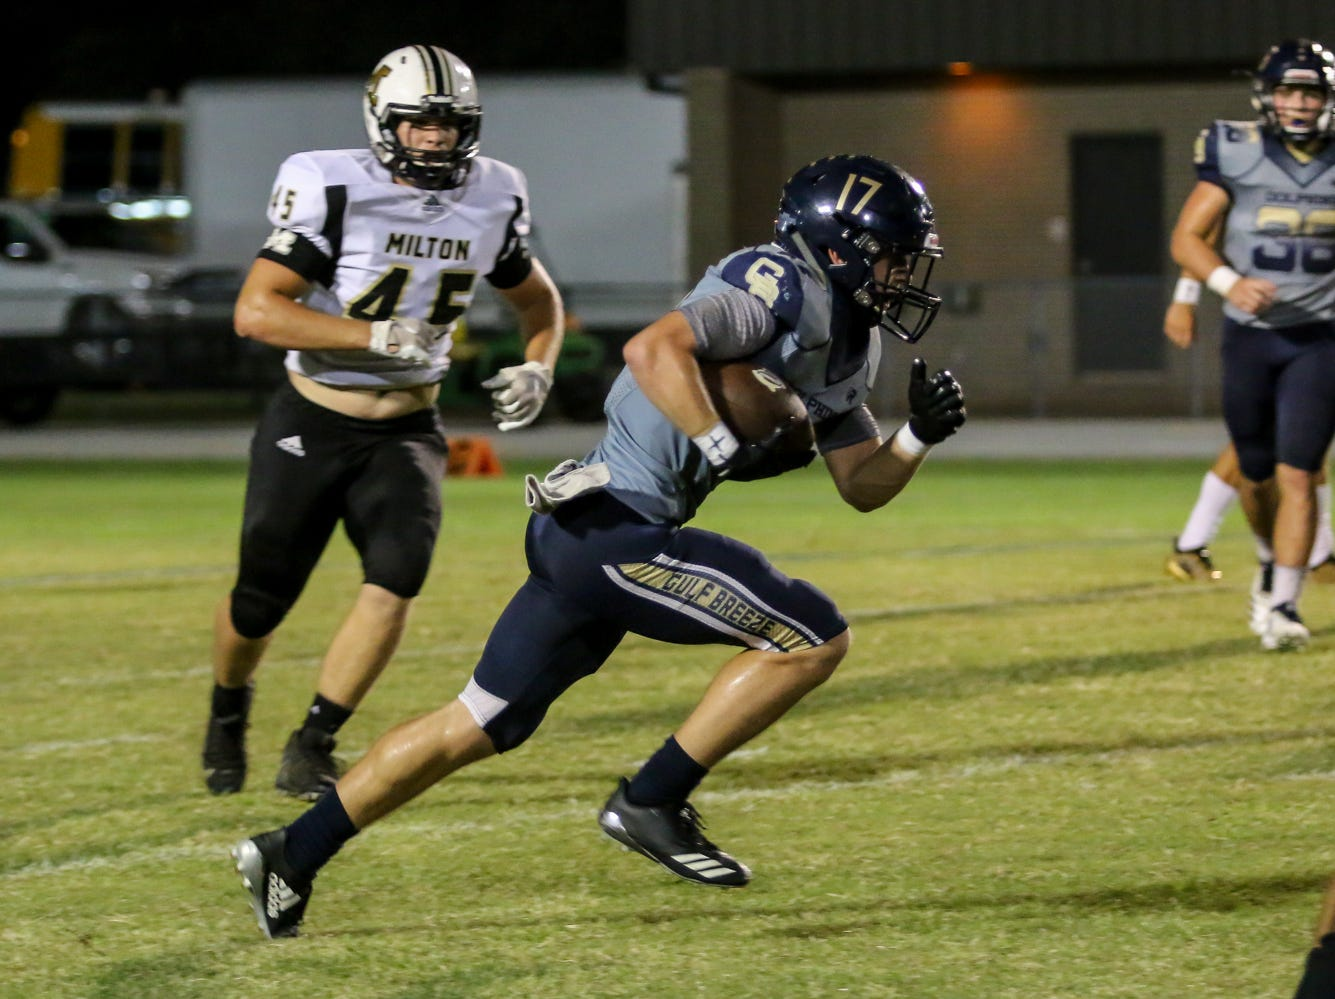 Gulf Breeze's Jayden Skipper (17) races up the field against Milton in the District 2-6A game at Gulf Breeze High School on Friday.